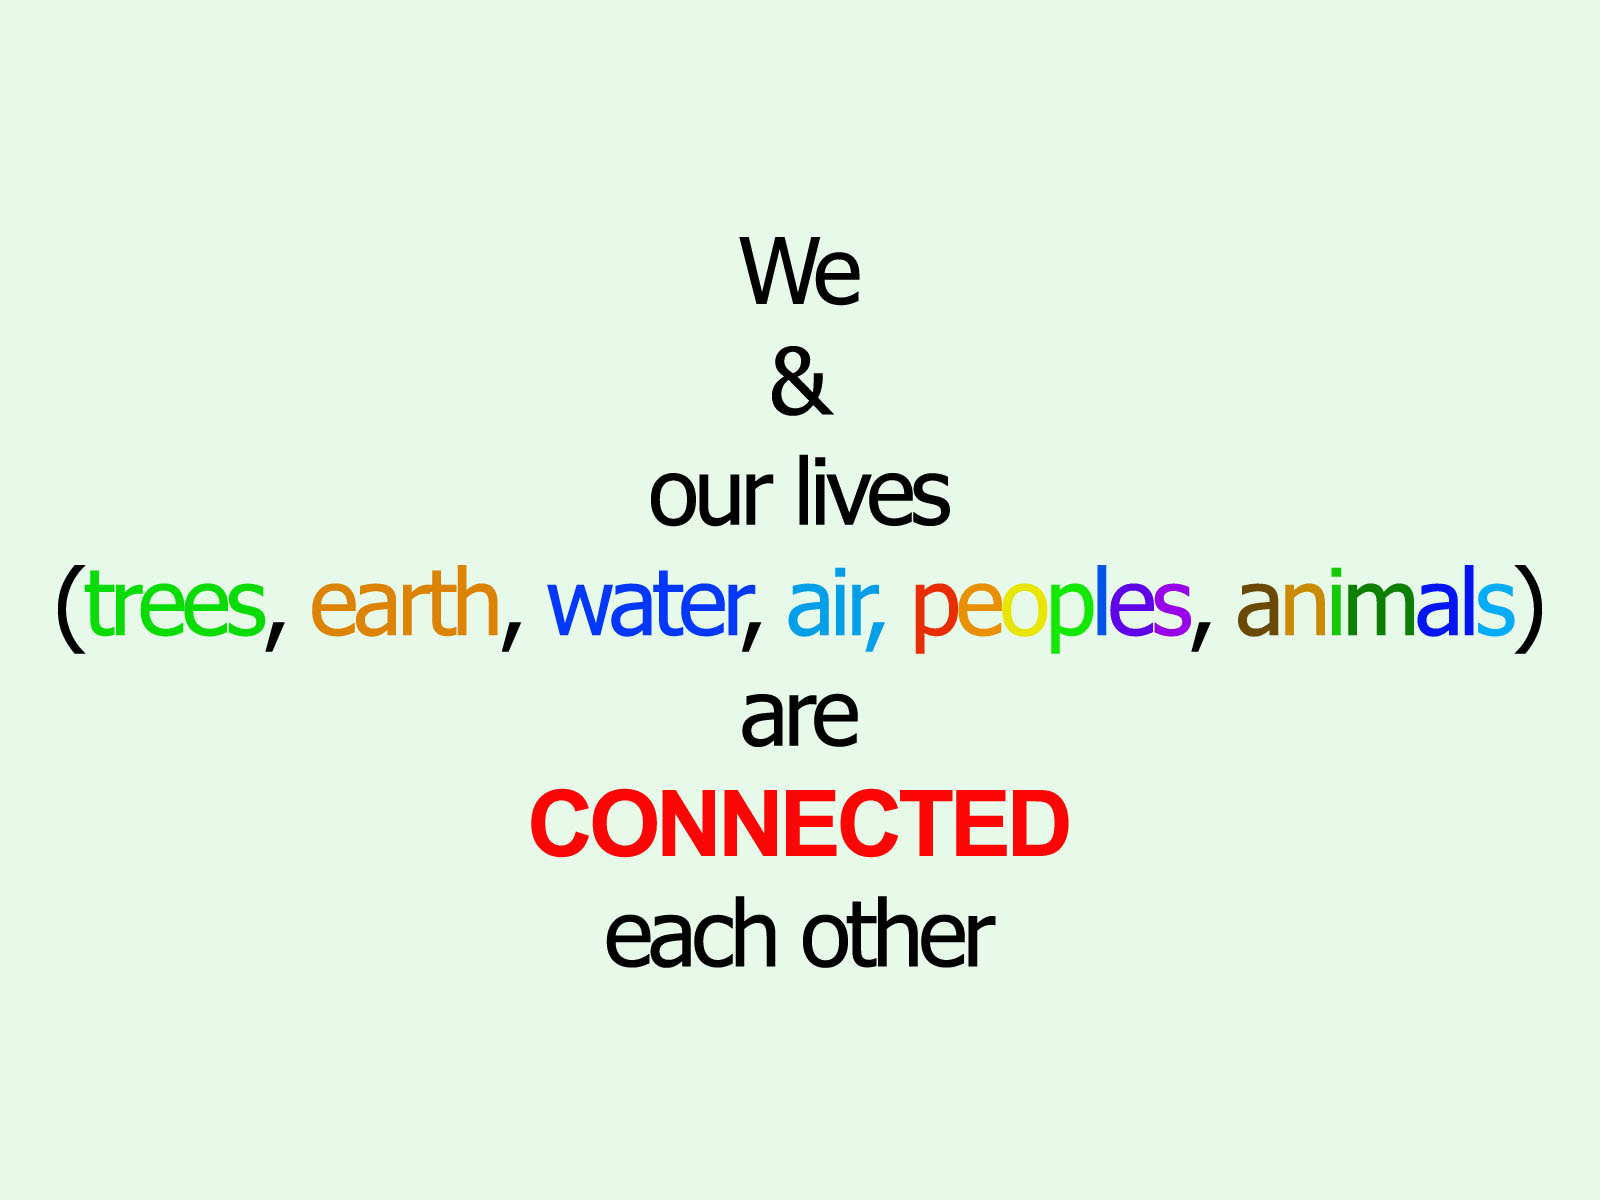 We and Our Lives are Connected.